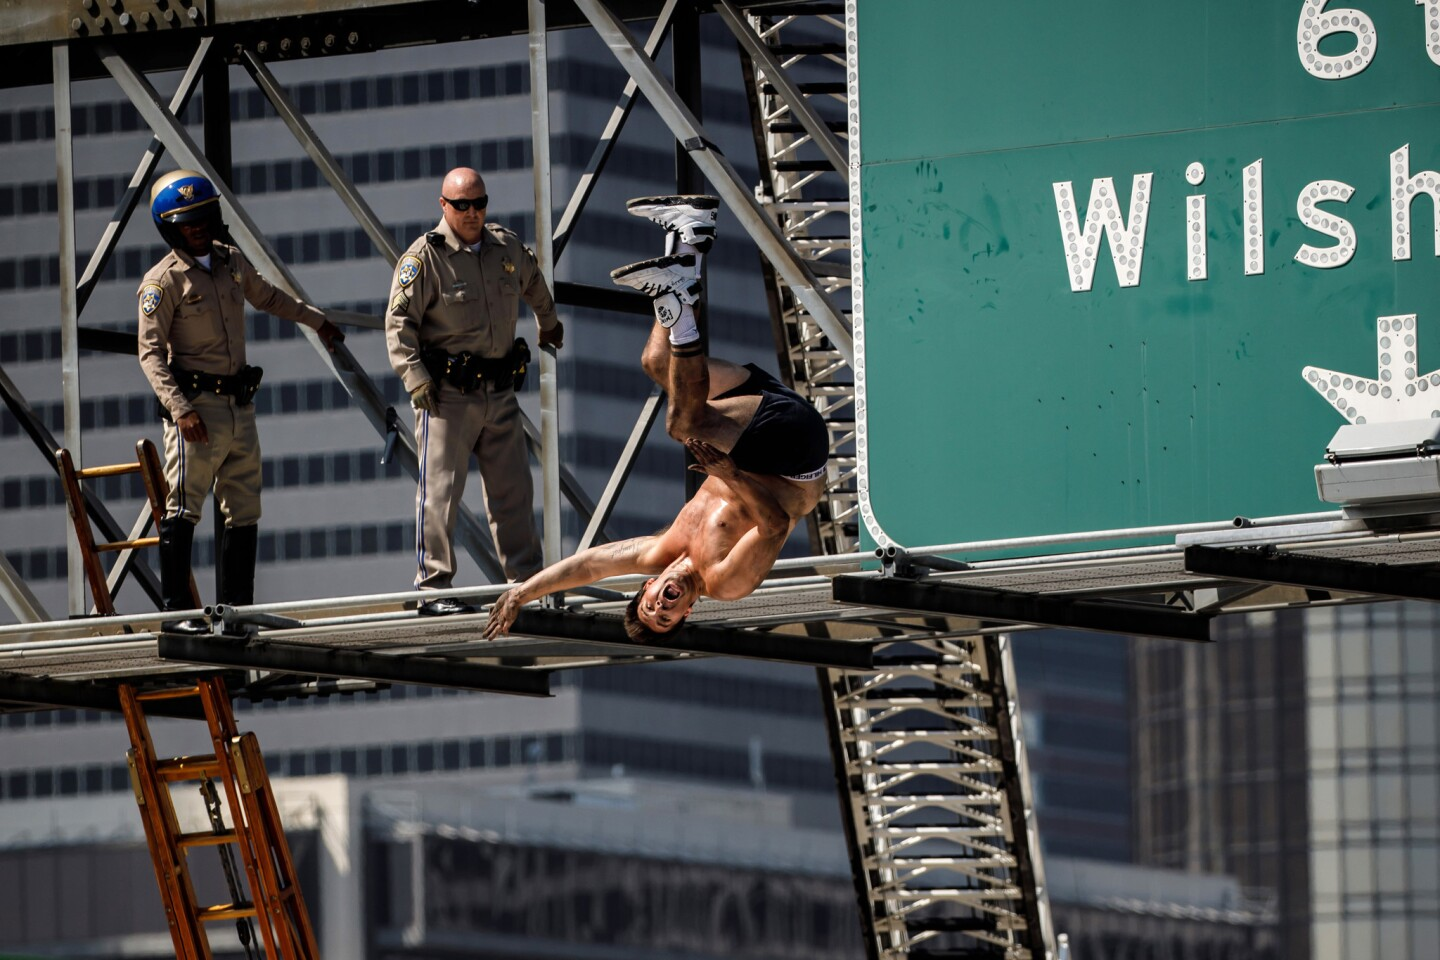 Man scales freeway sign in Los Angeles